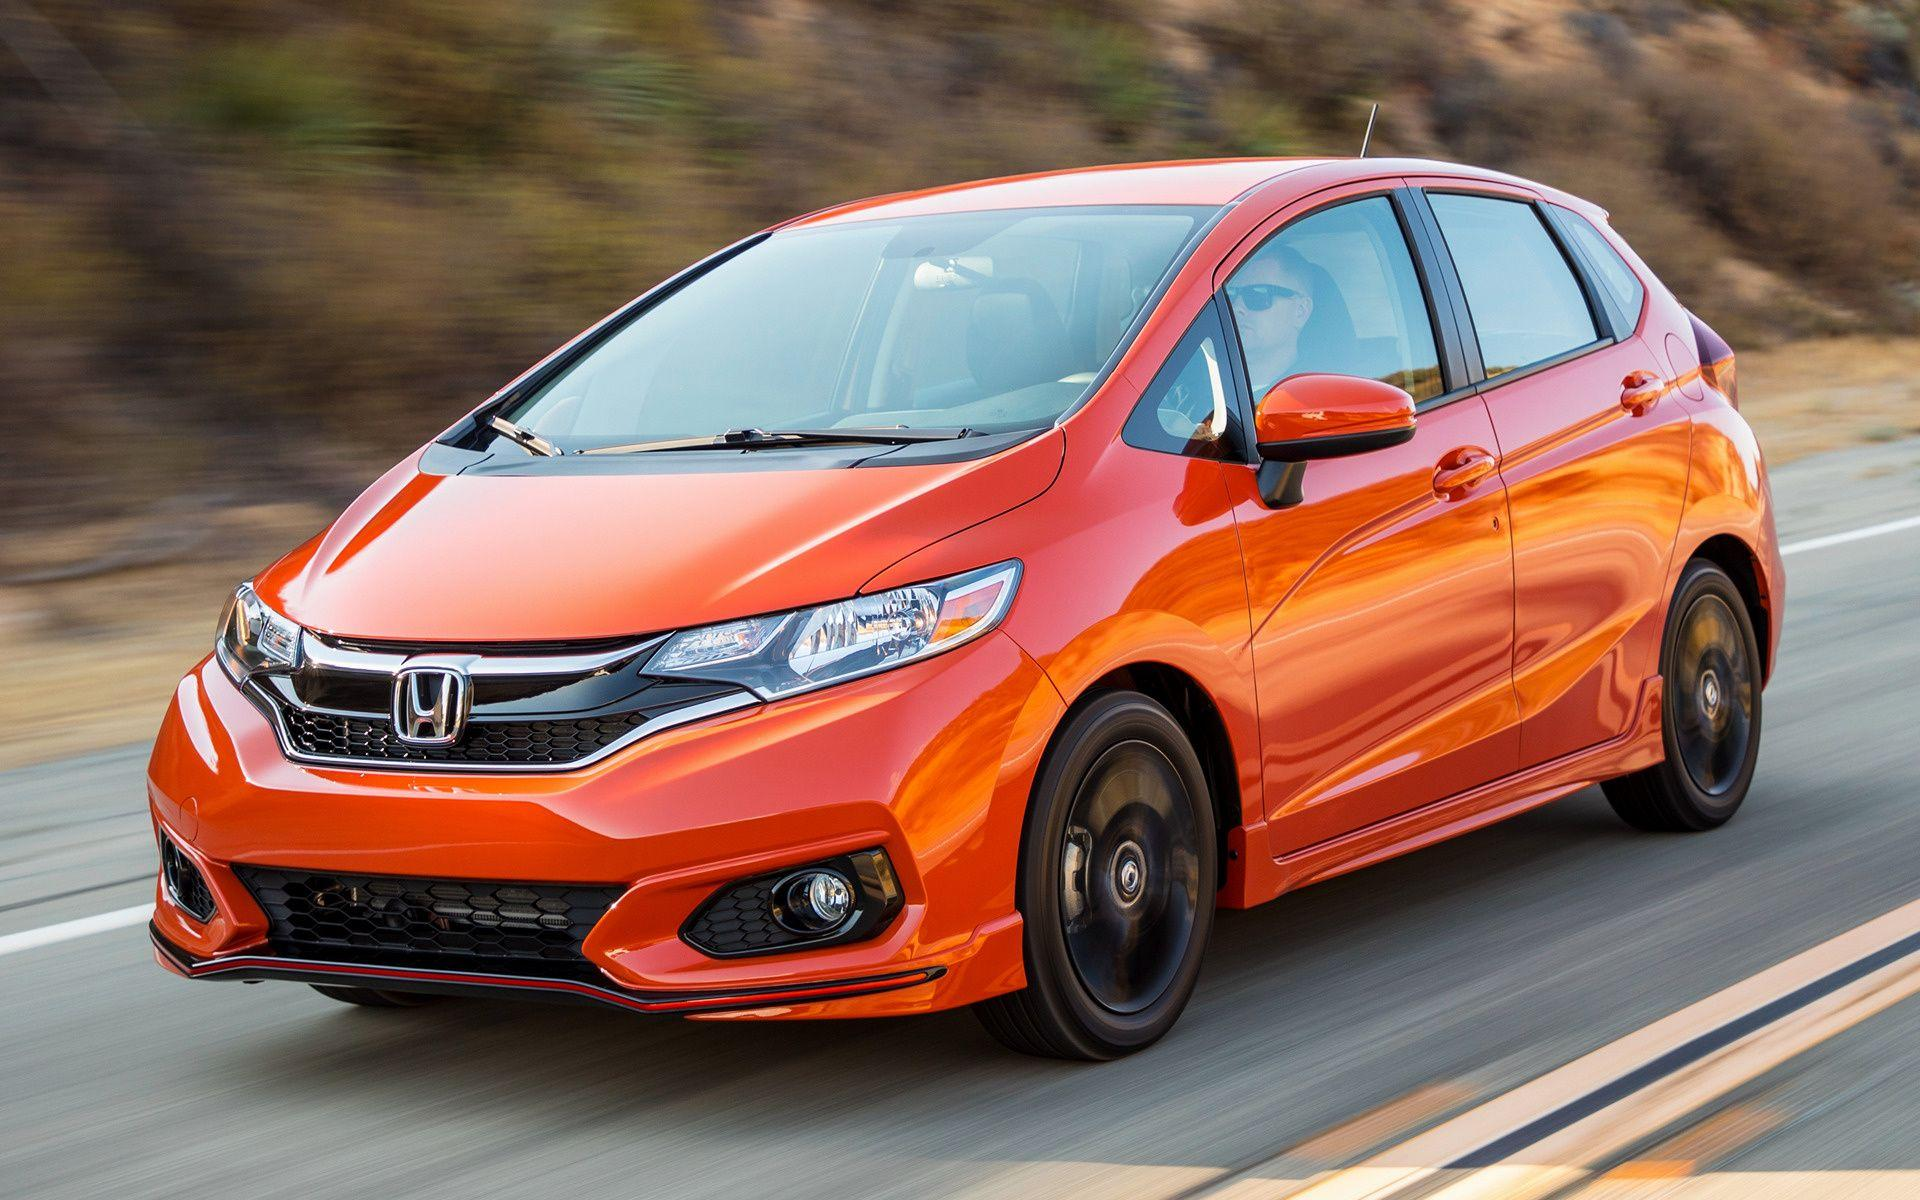 Honda Fit Sport (2018) Wallpapers and HD Images - Car Pixel